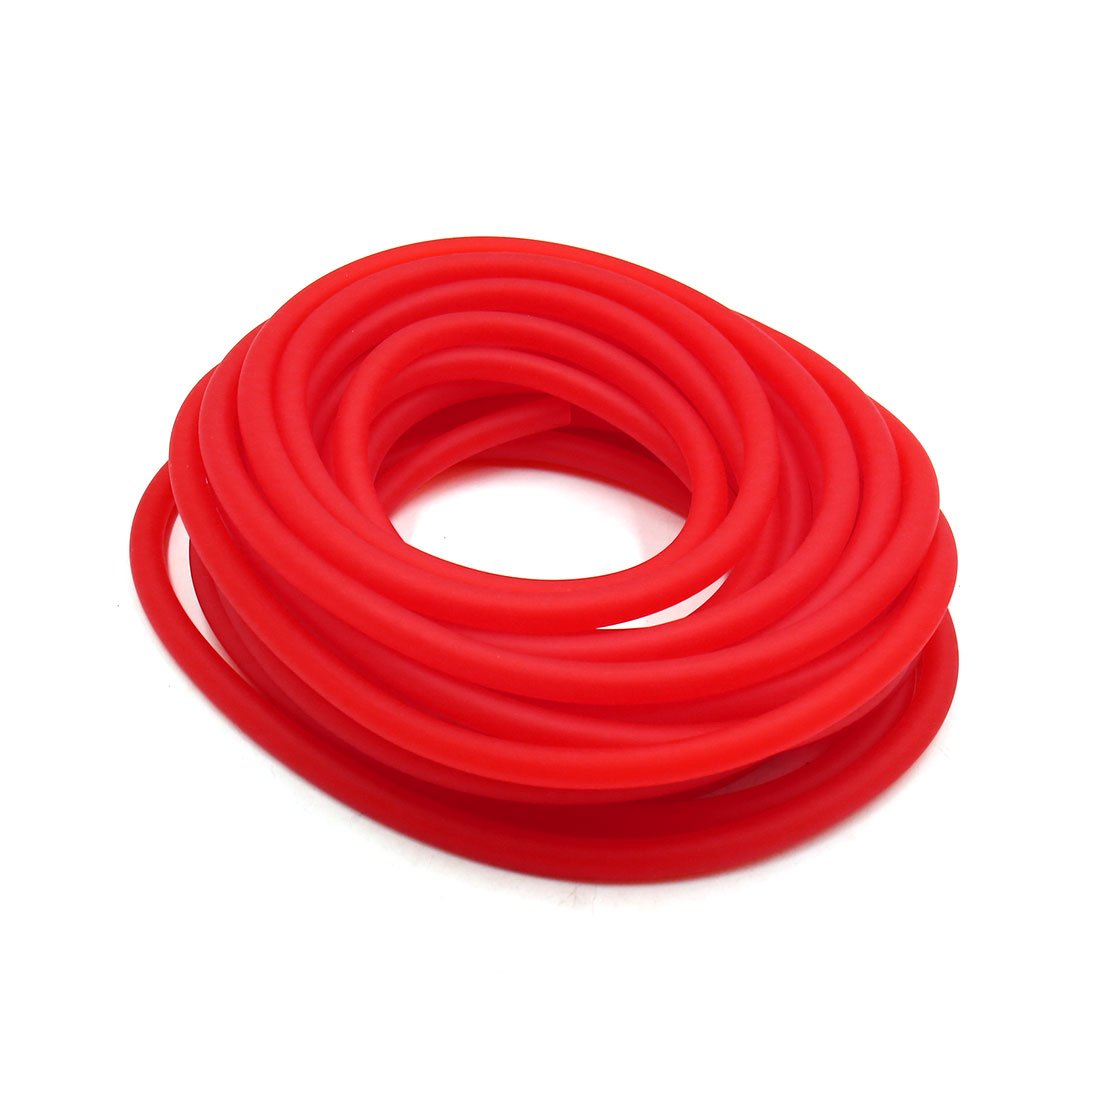 uxcell 10m Length 4mm Inner Dia Red Rubber Motorcycle Oil Hose Fuel Tube Petrol Pipe